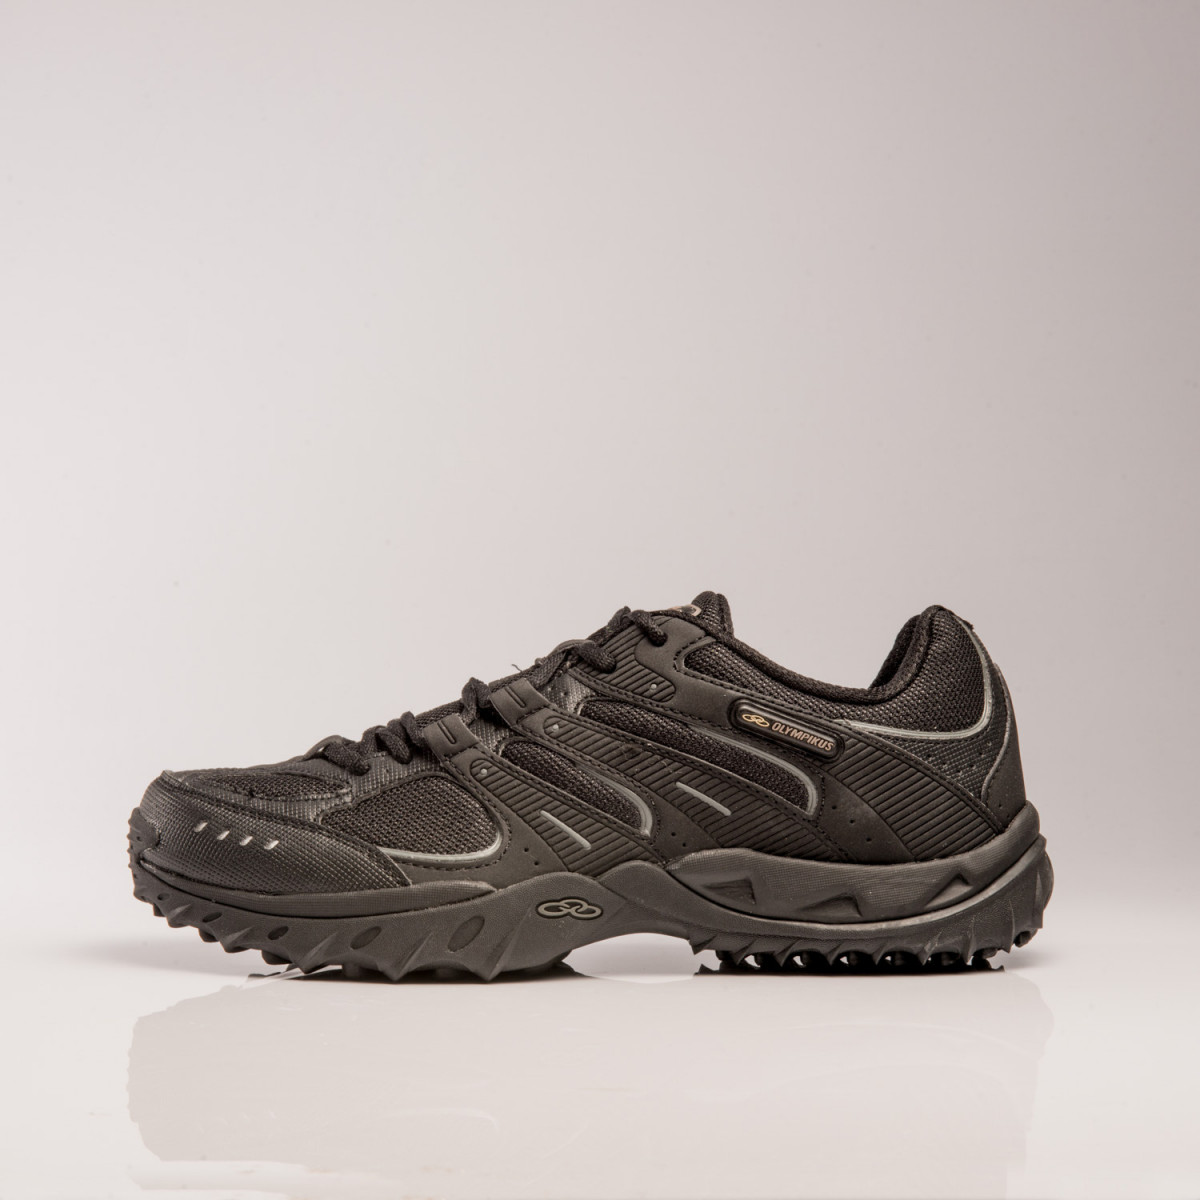 ZAPATILLAS OLYMPIKUS TRACKER